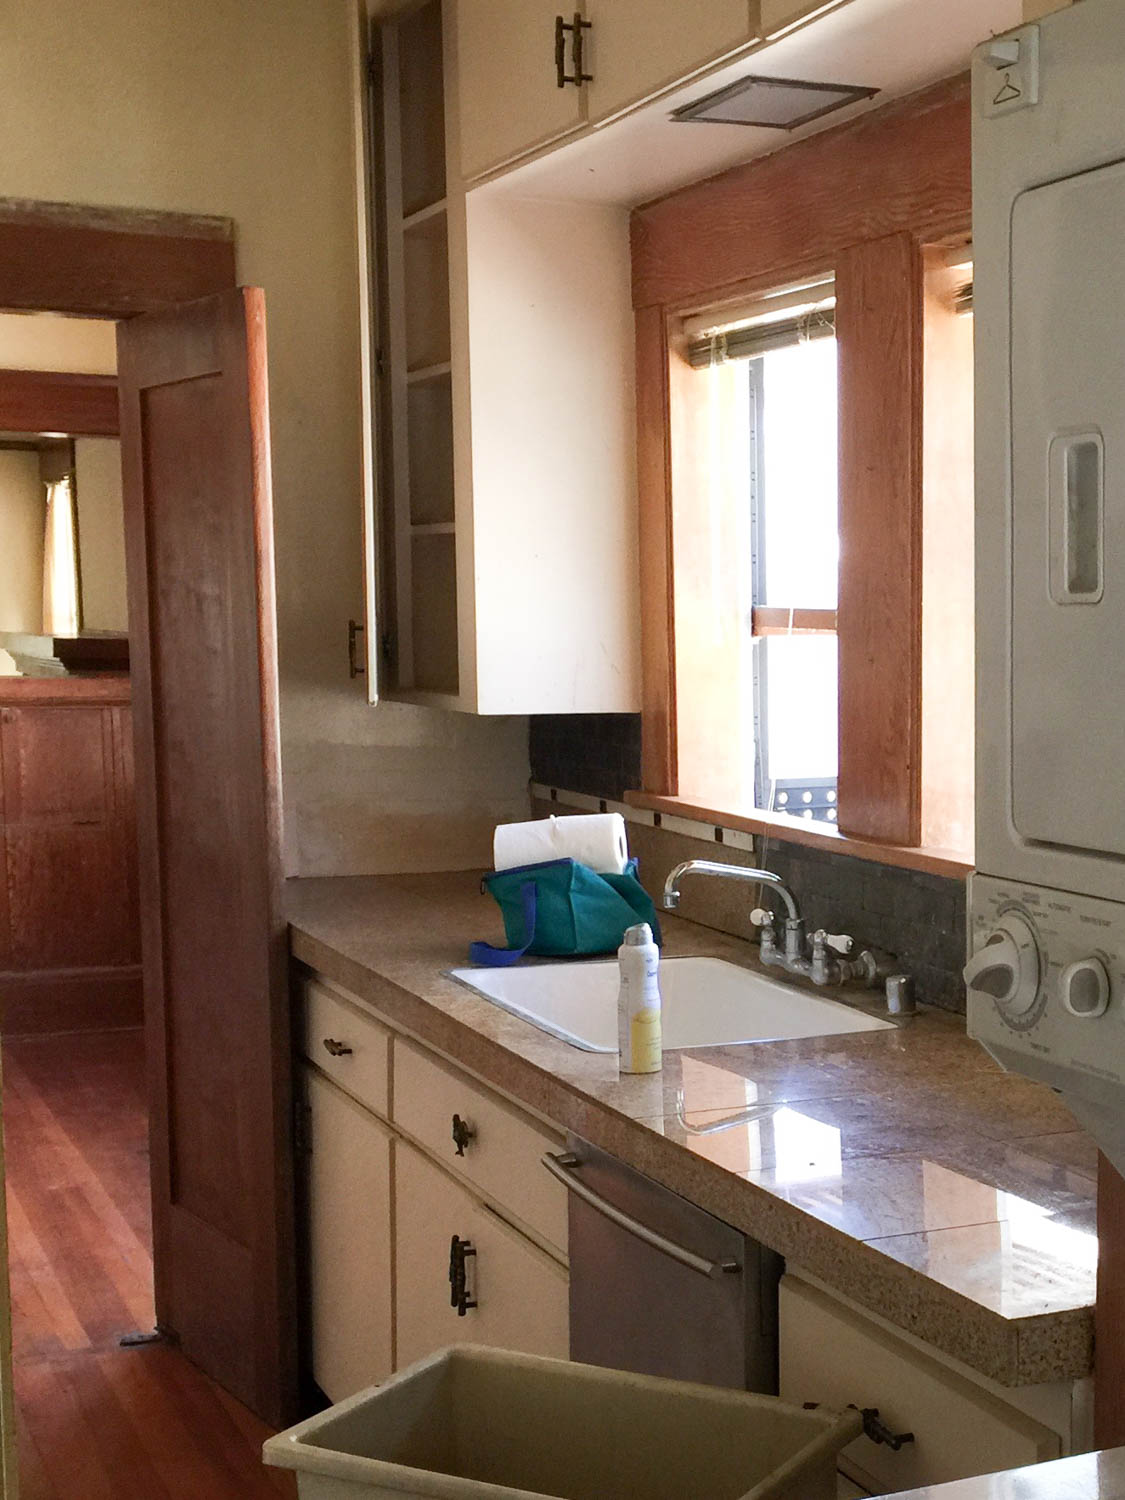 Concrete Countertops Pricing Concrete Countertops In The Kitchen A How To And A Report On Two